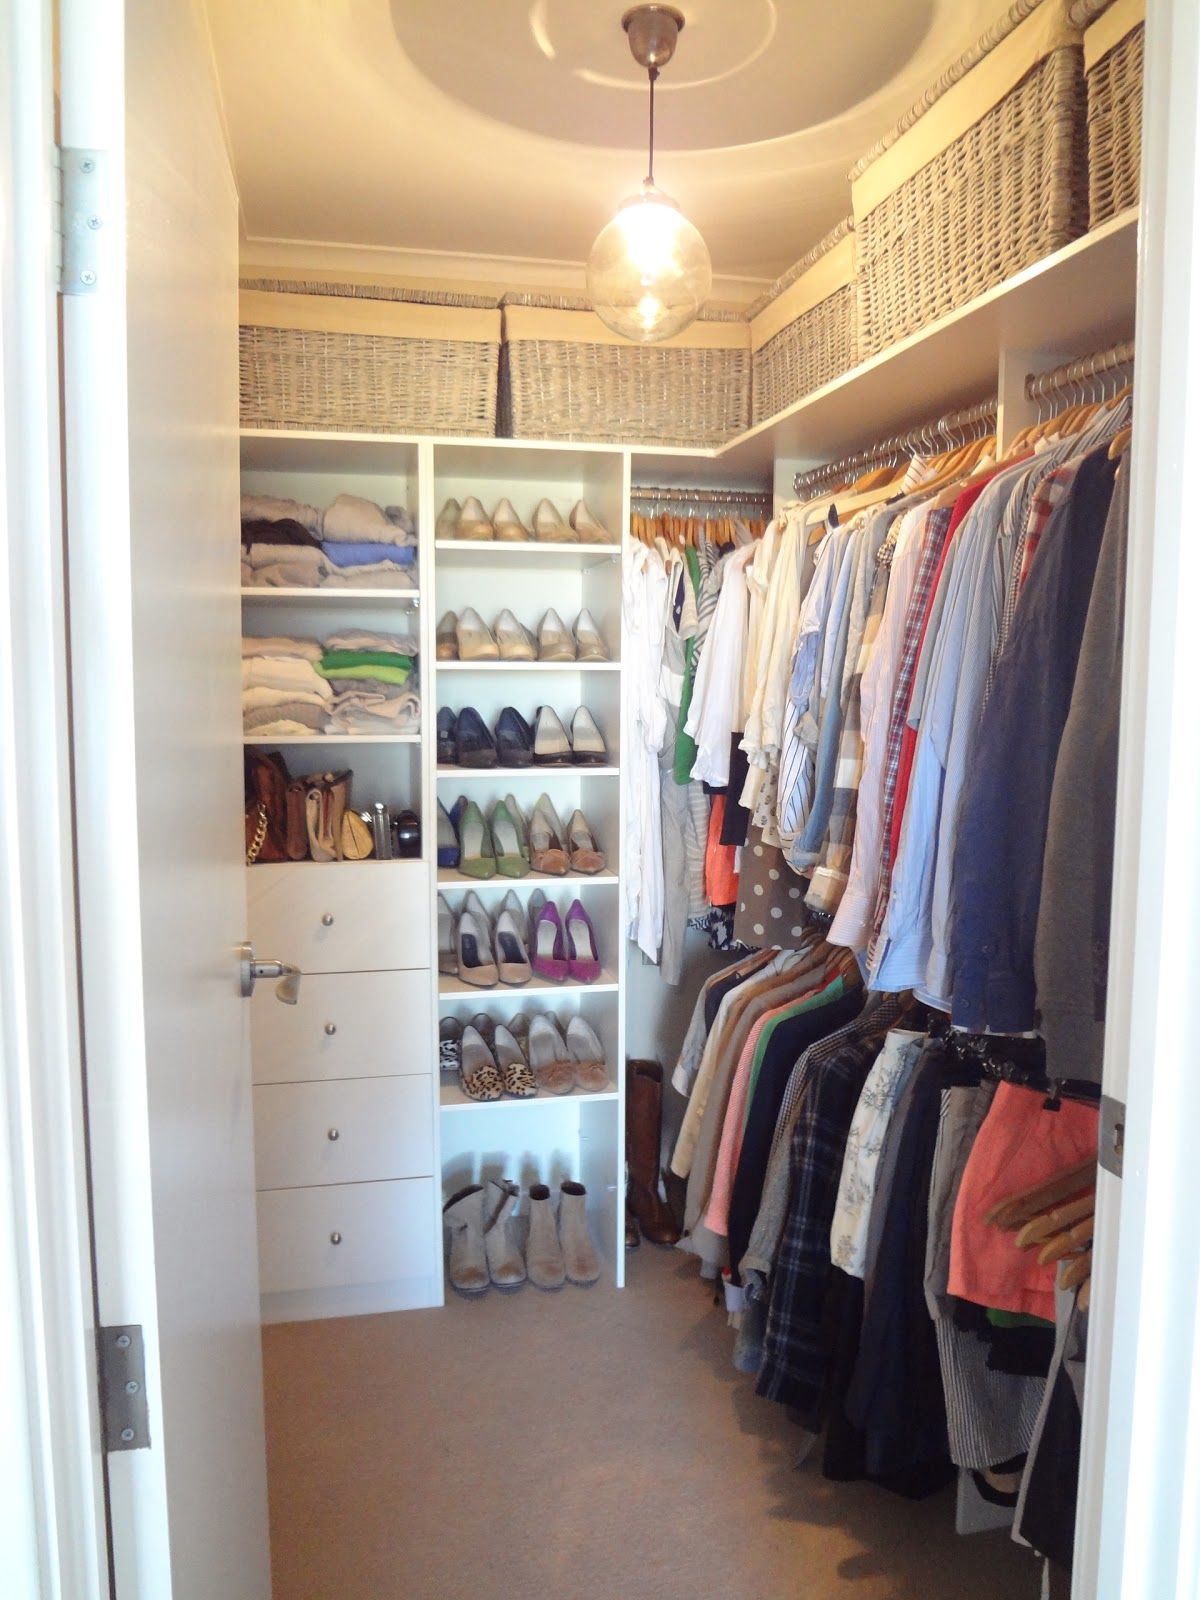 Modern Beige Walk In Closet Design Comes With Awesome Ideas Men Love Image And White Wall Cabinet